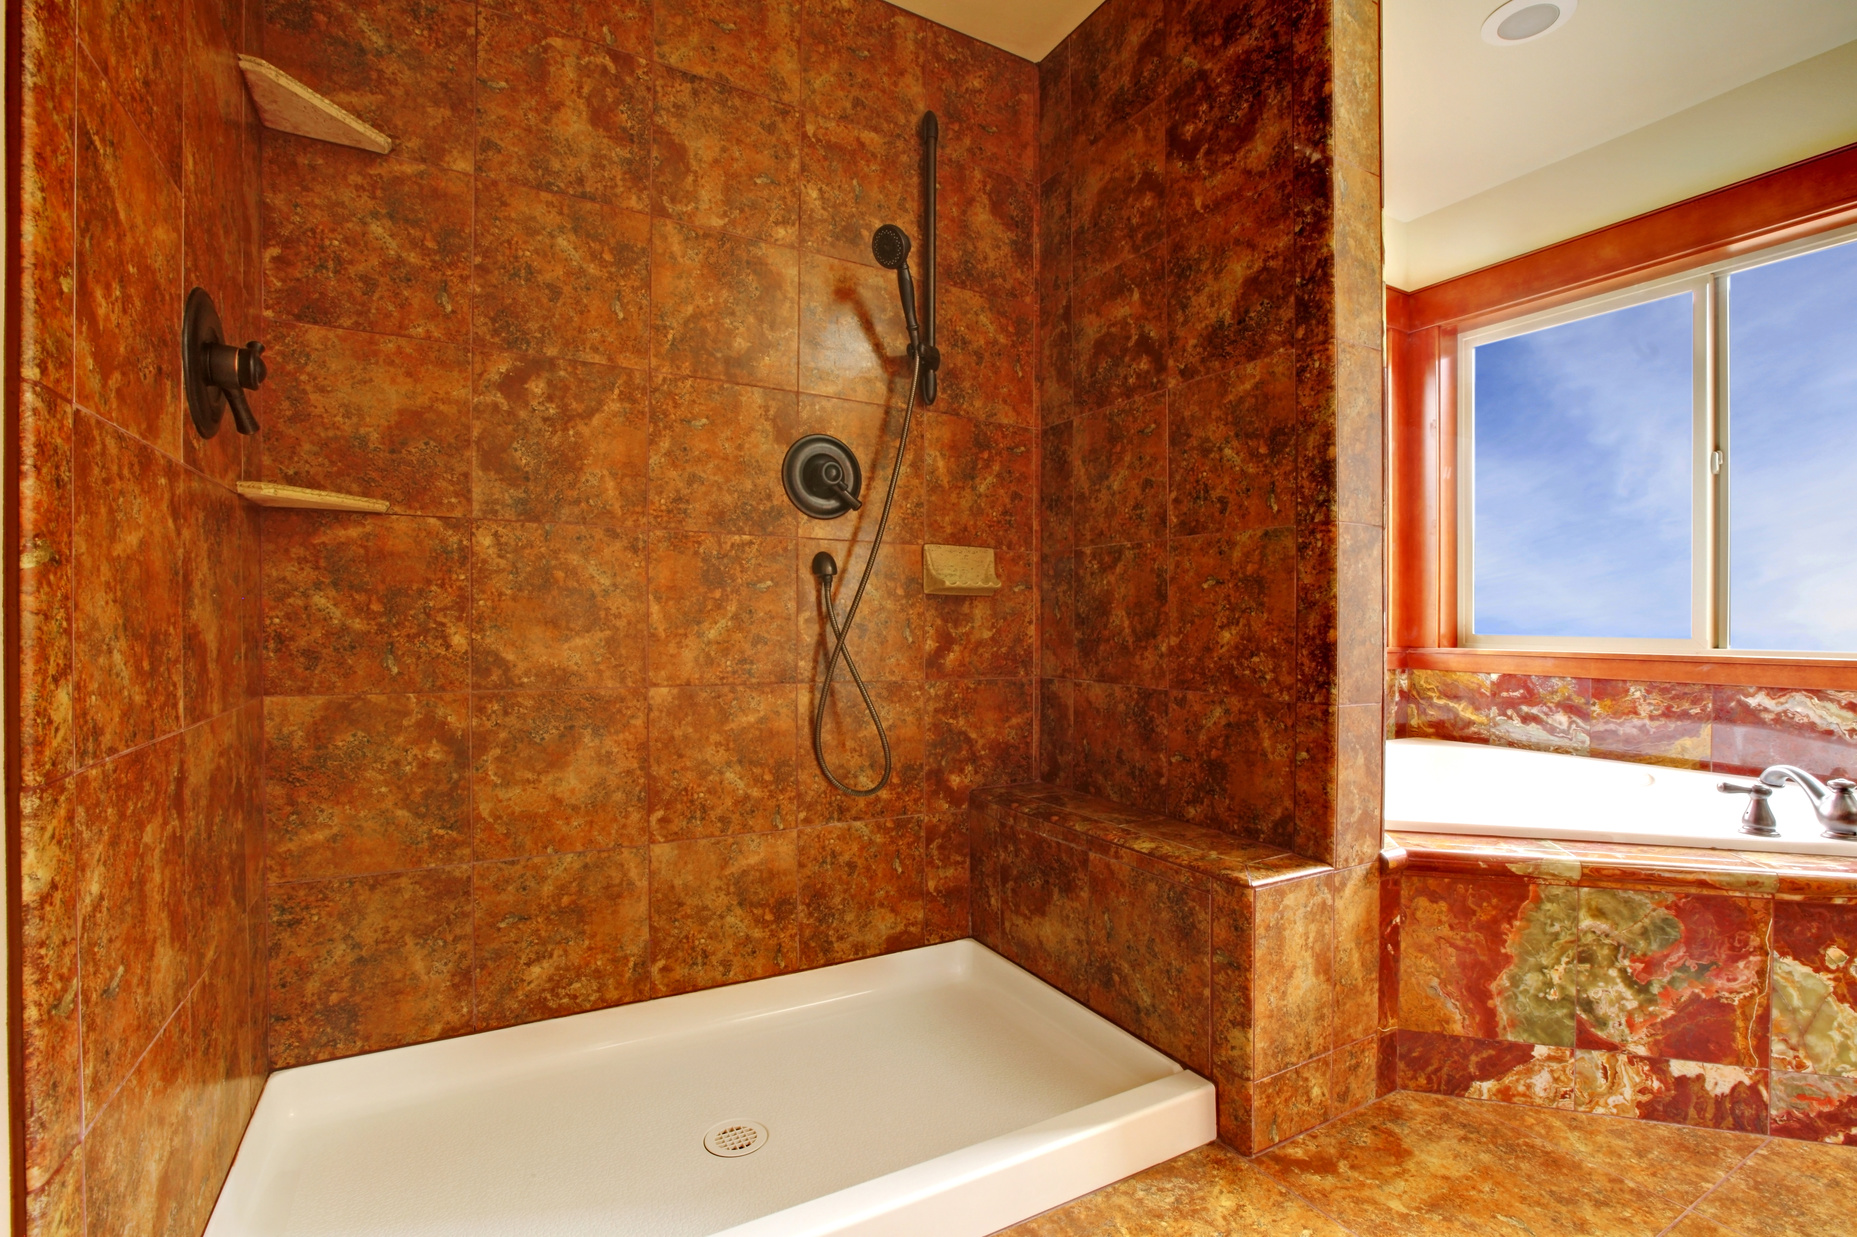 038404576-luxury-red-marble-bathroom-new.jpeg